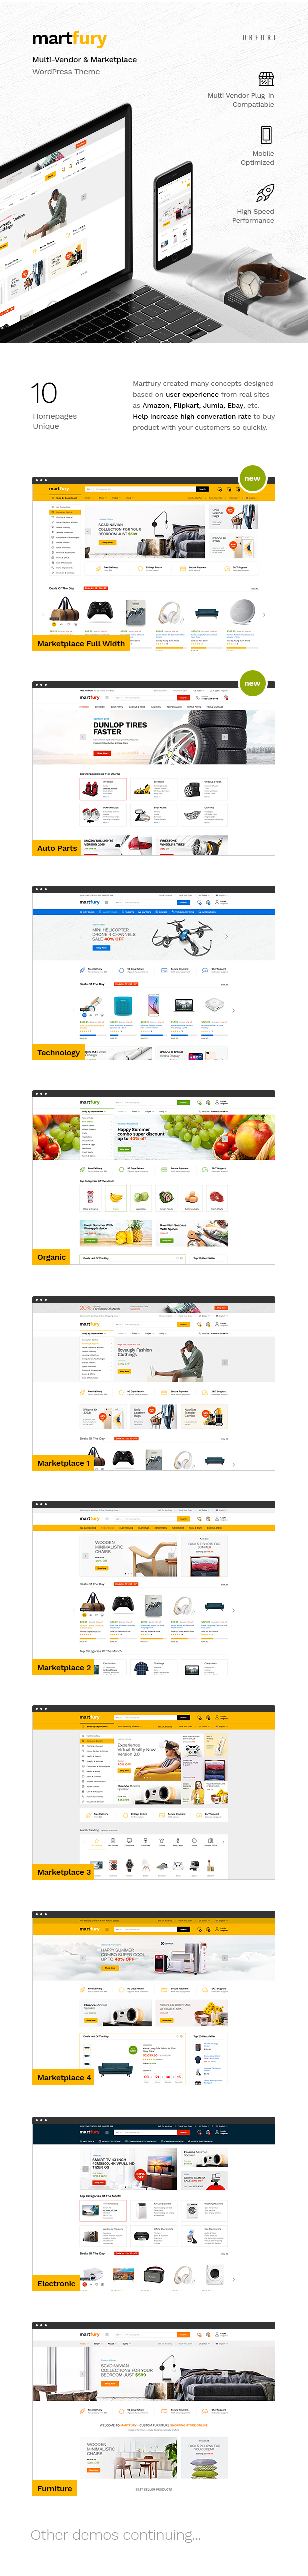 Martfury - WooCommerce Marketplace WordPress Theme - 13